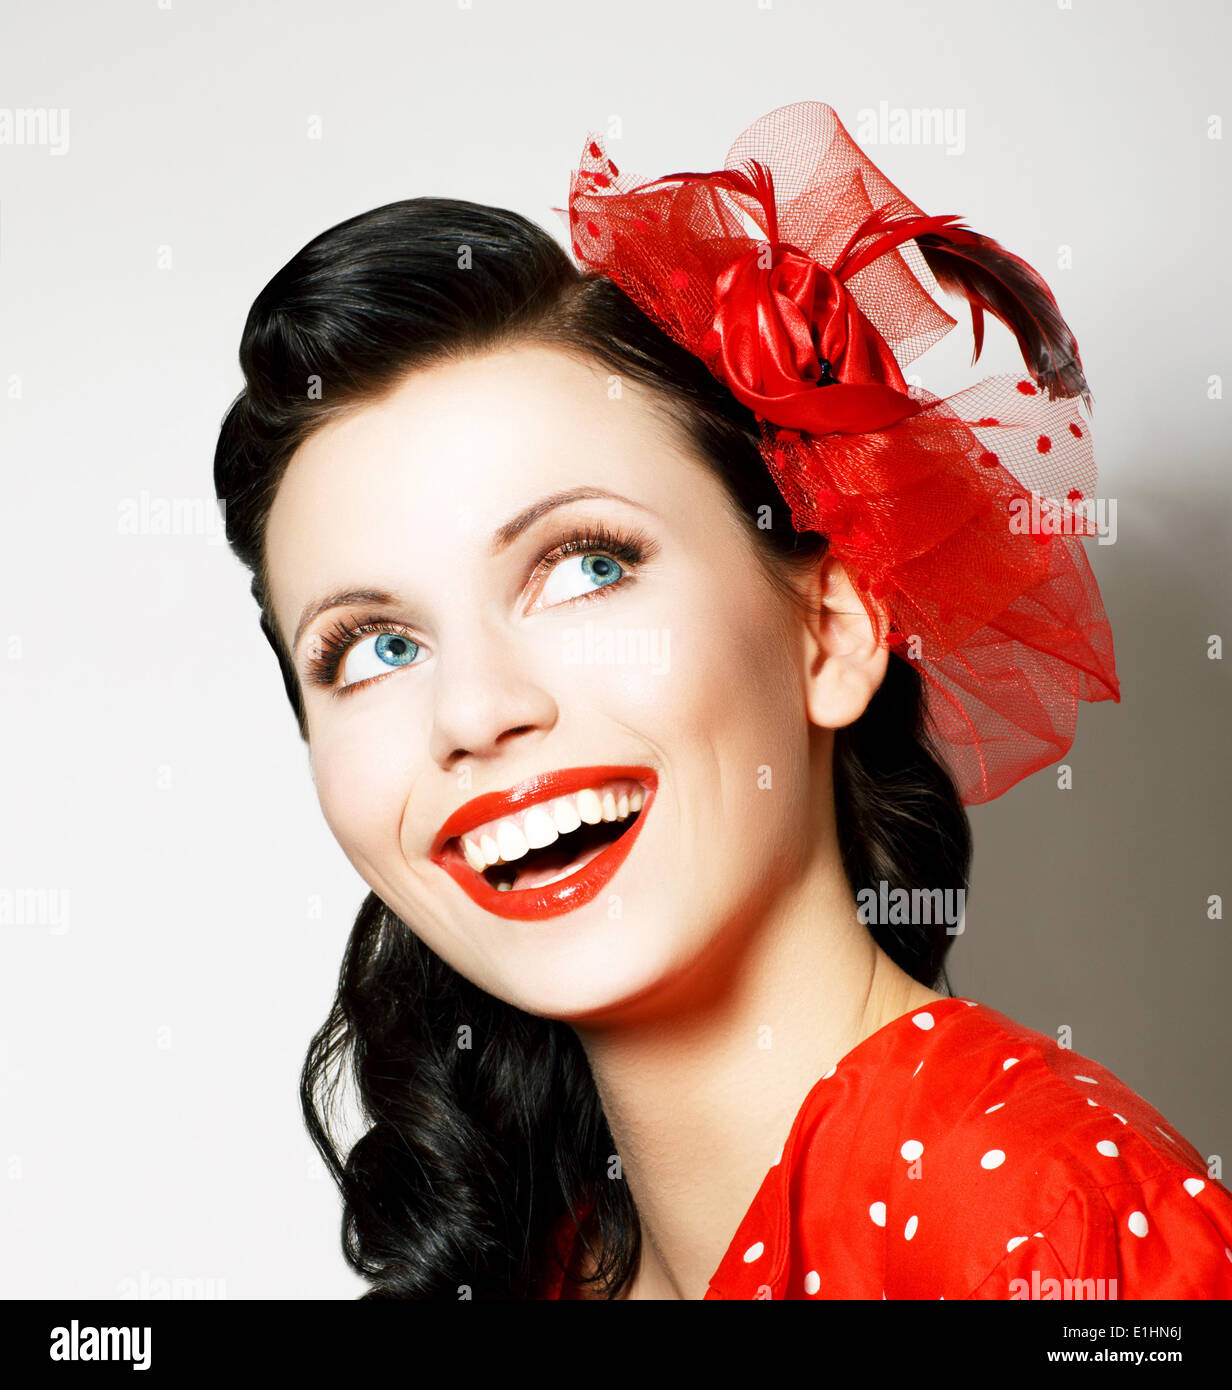 Vitality. Cheerful Young Woman with Red Bow enjoying. Pleasure - Stock Image